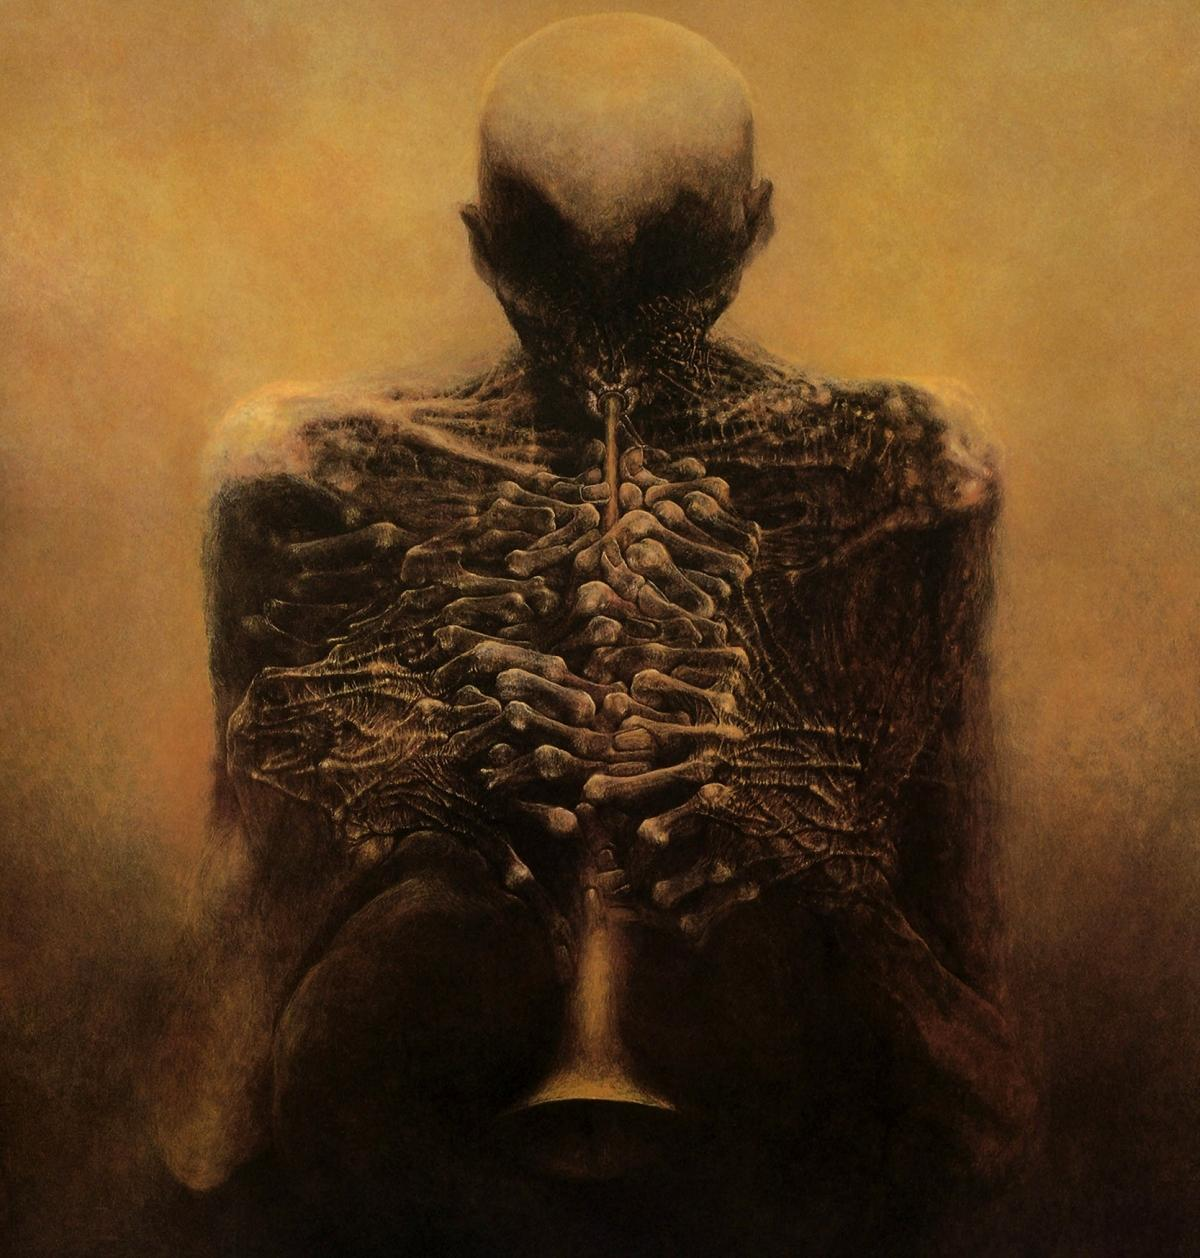 terrapapers.com_ 1beksinski The Trumpeter